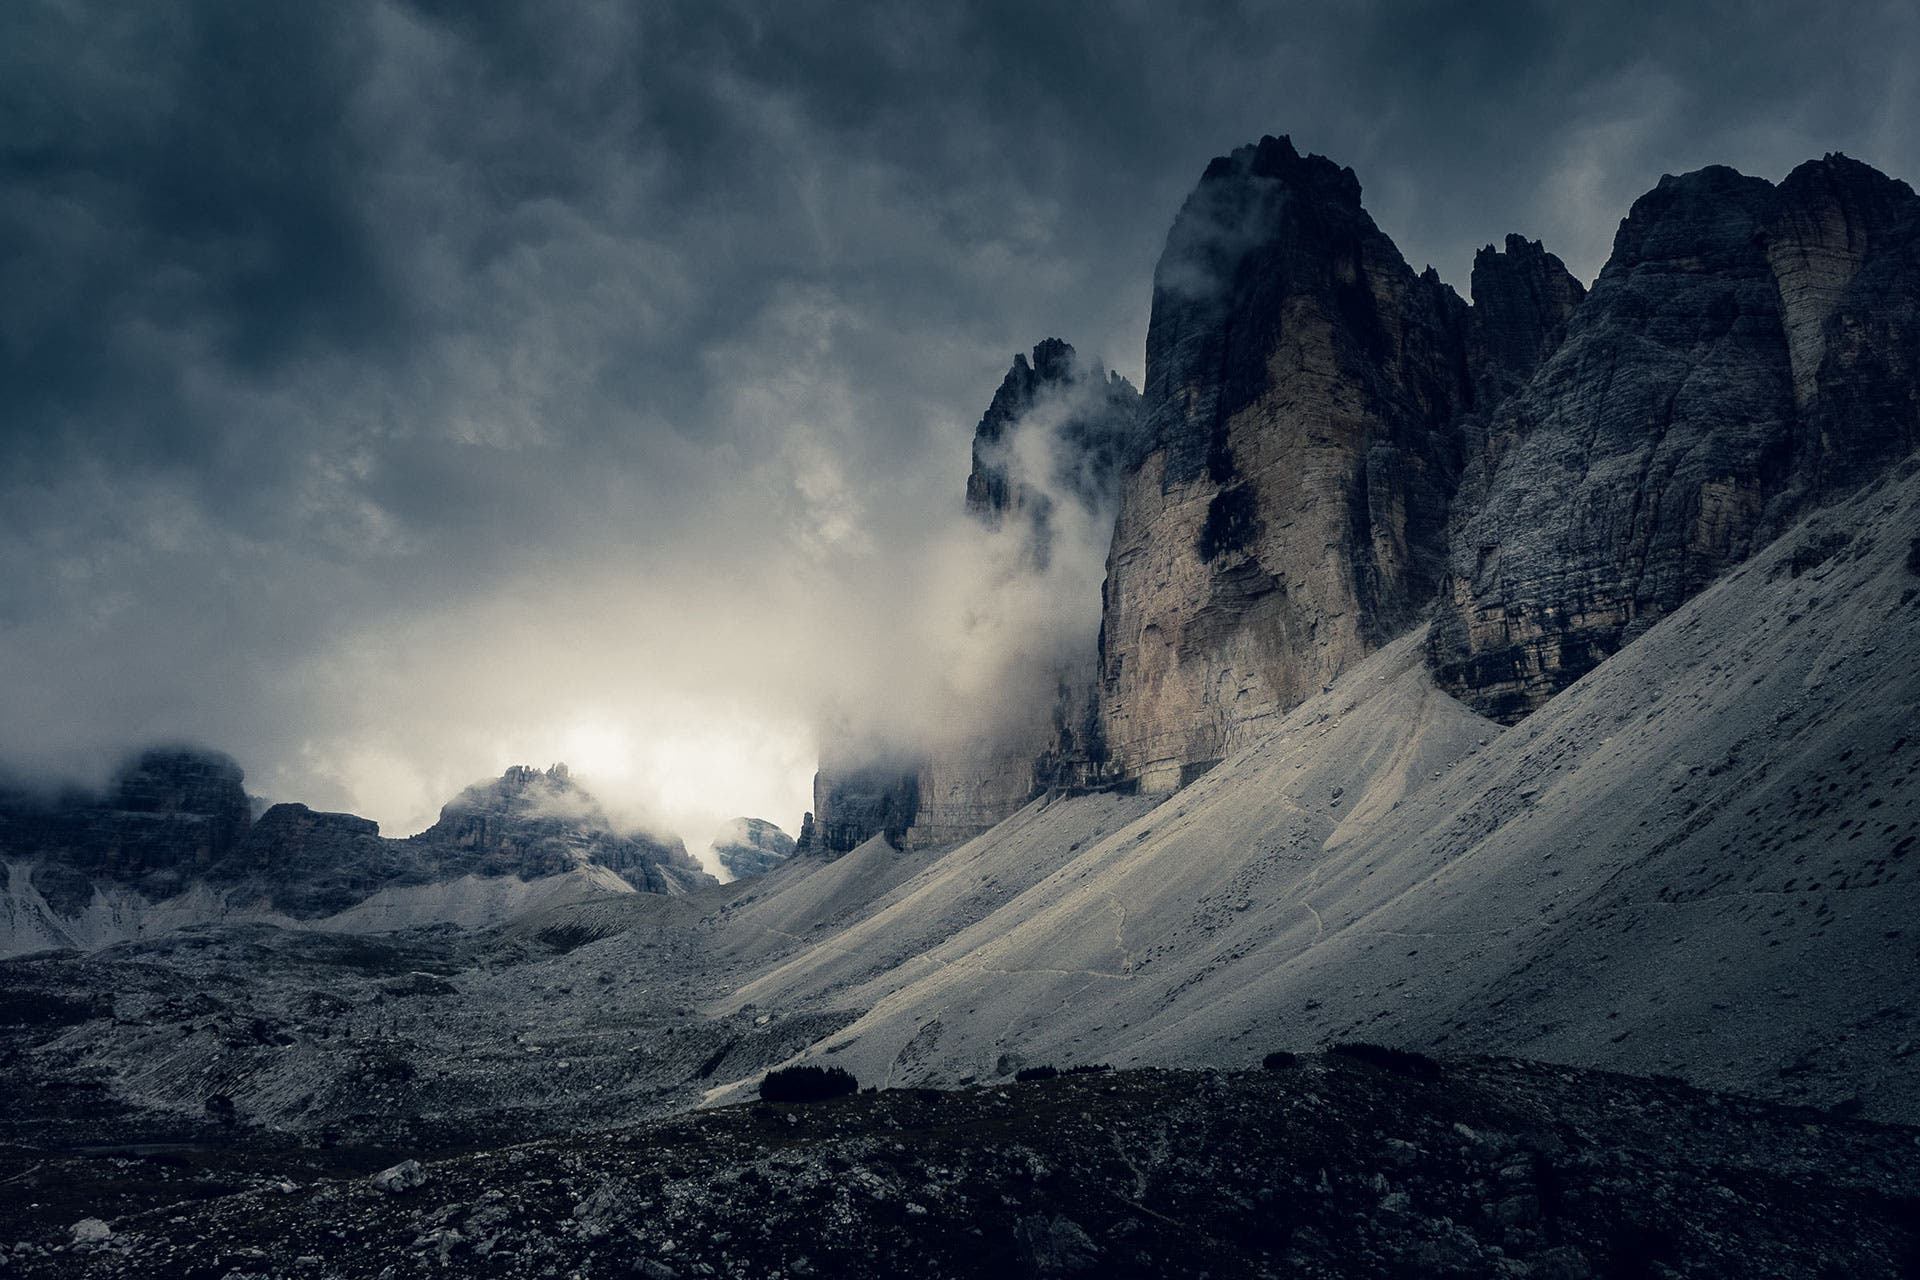 Andreas Levers Captures Surreal Dolomites Landscapes